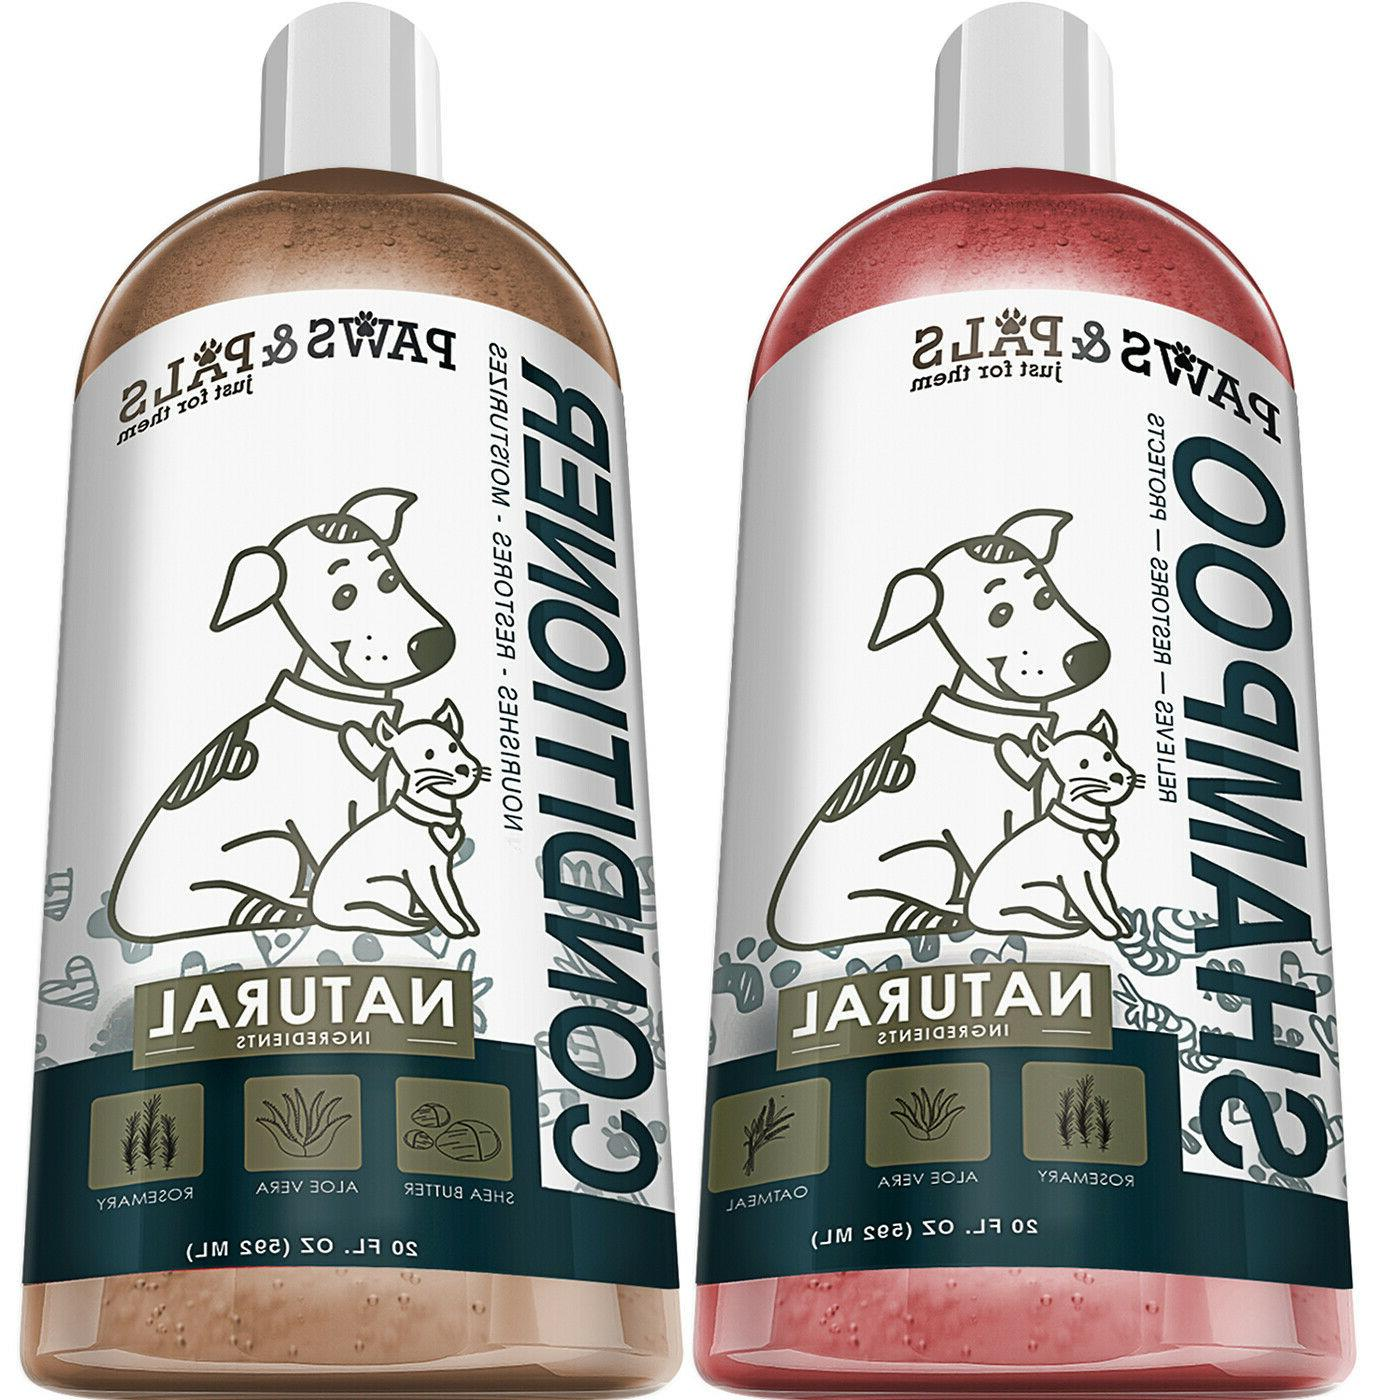 dog shampoo and conditioner for pet cat